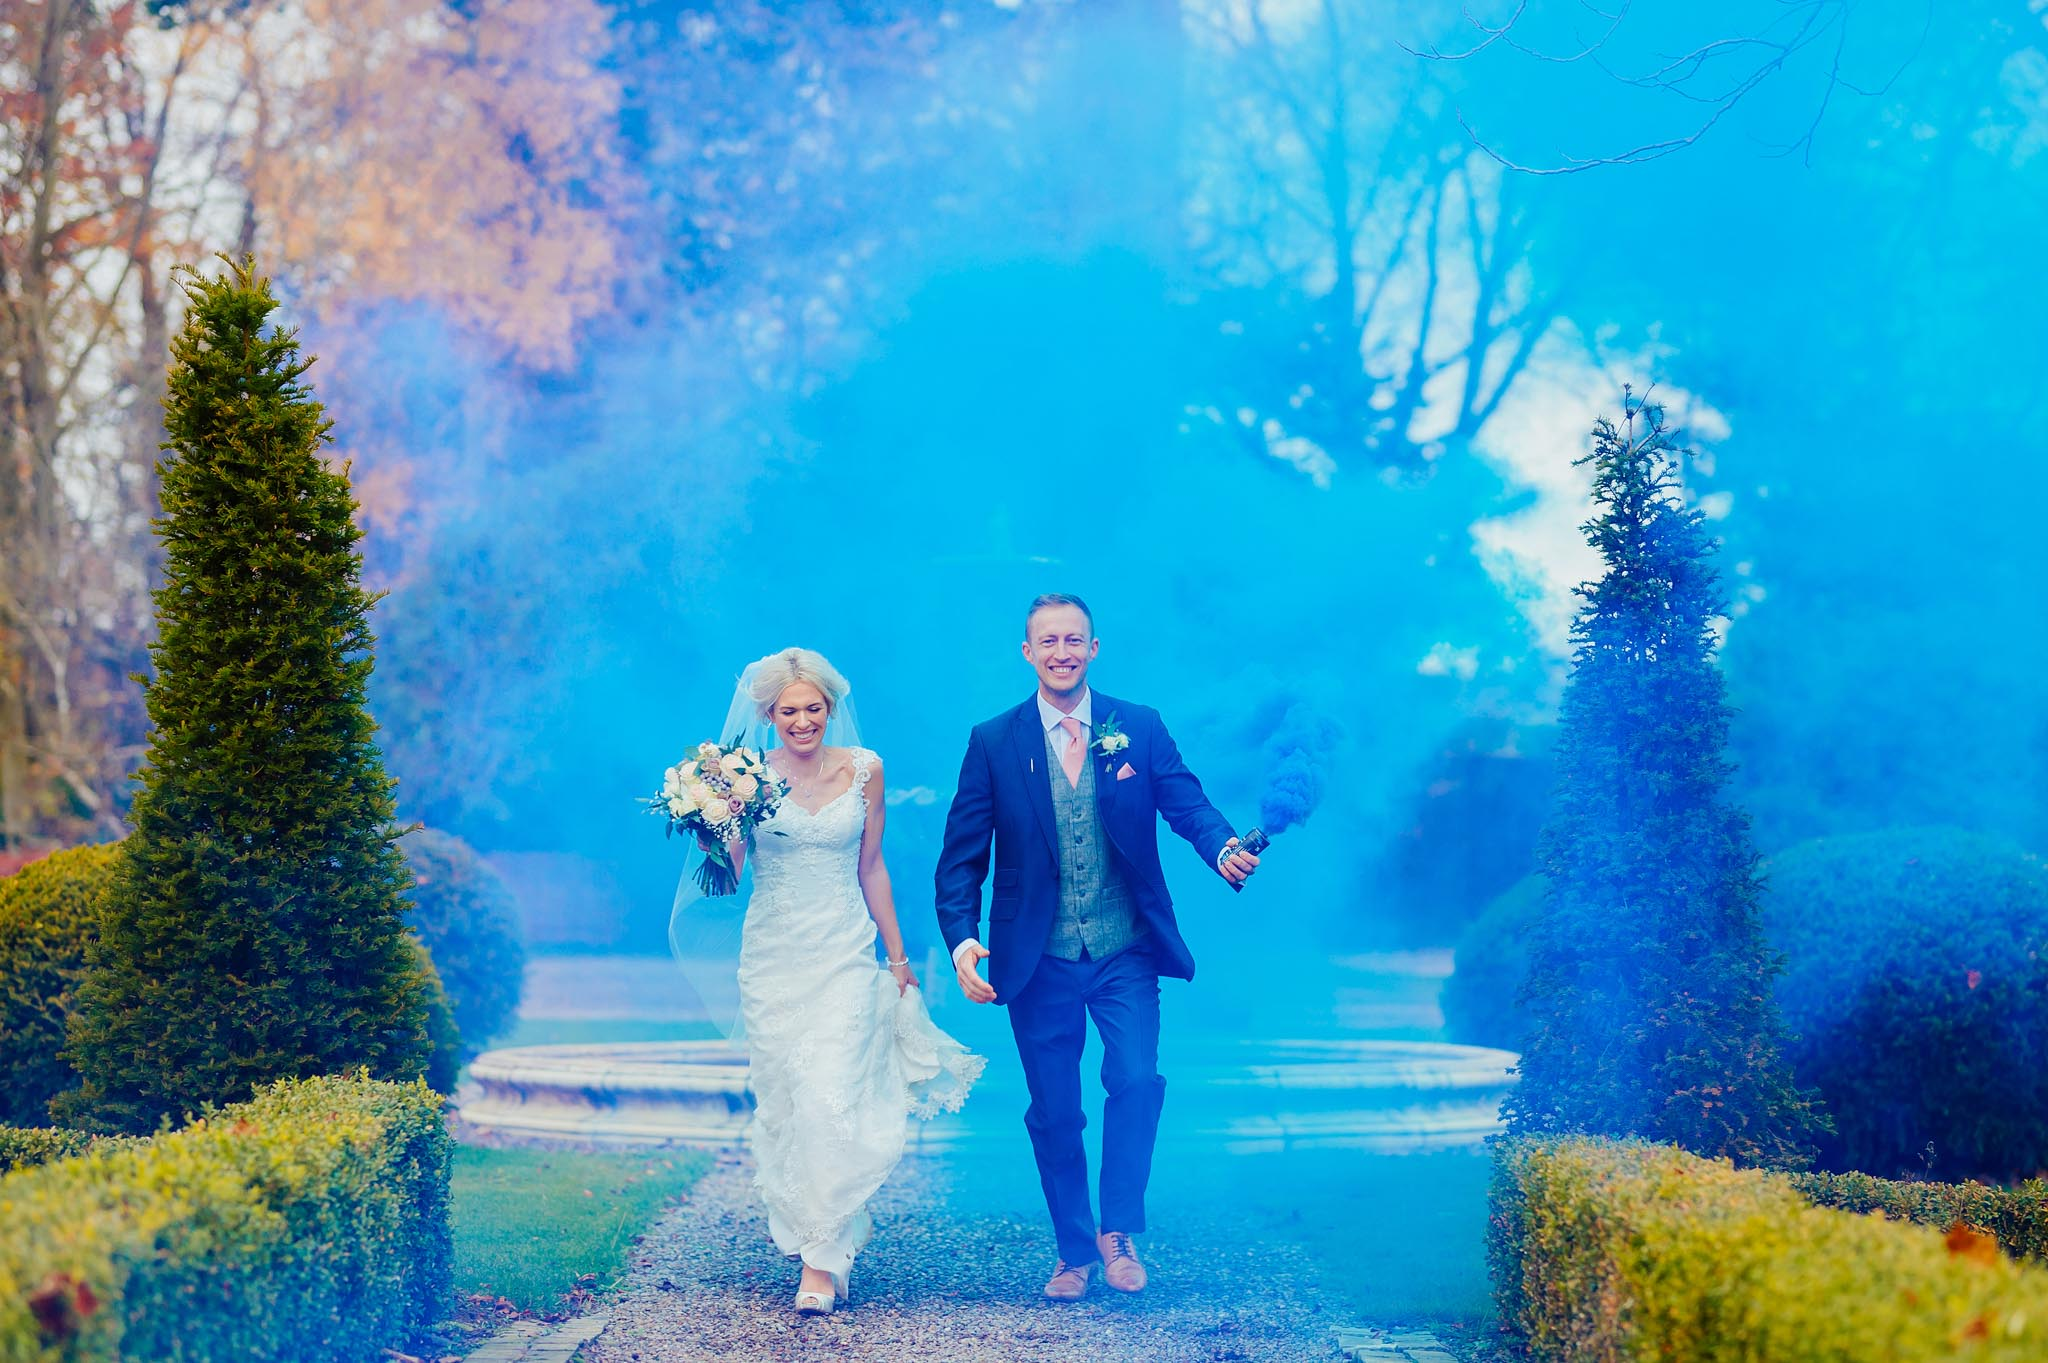 Lemore Manor wedding, Herefordshire - West Midlands | Sadie + Ken 78